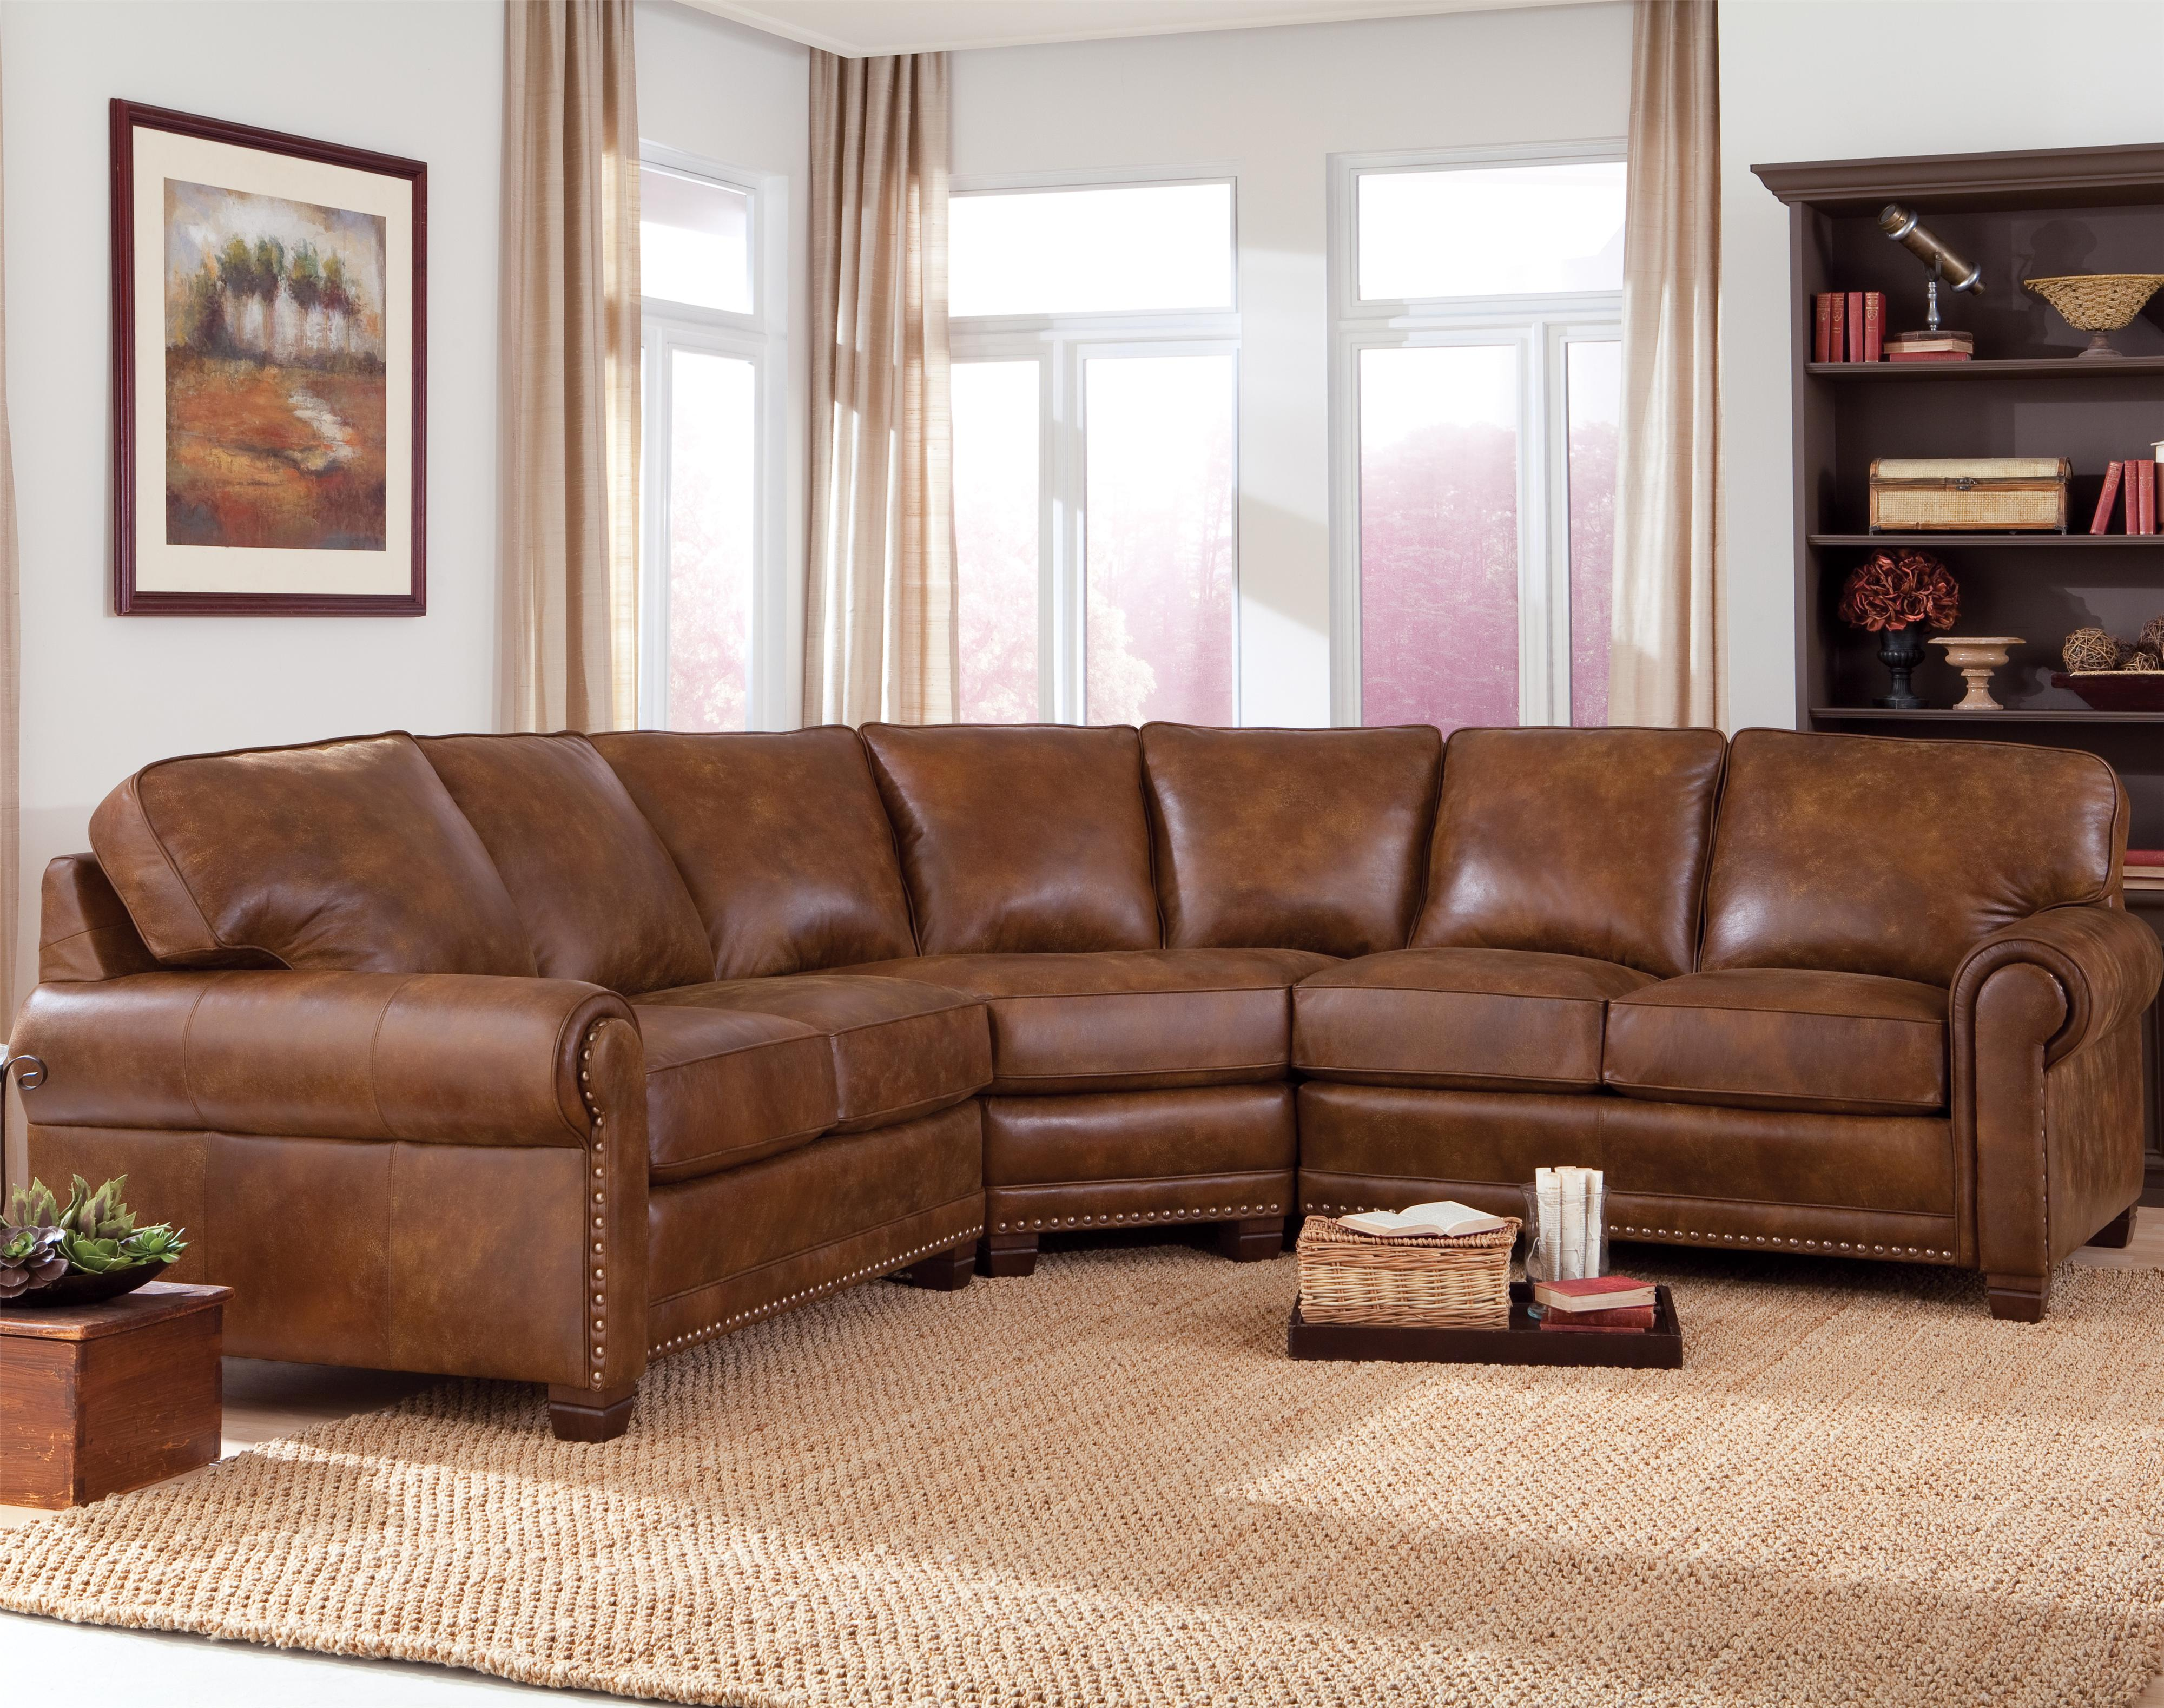 pictures of living rooms with brown sectionals best price room furniture smith brothers 393 traditional 3 piece sectional sofa nailhead trim by